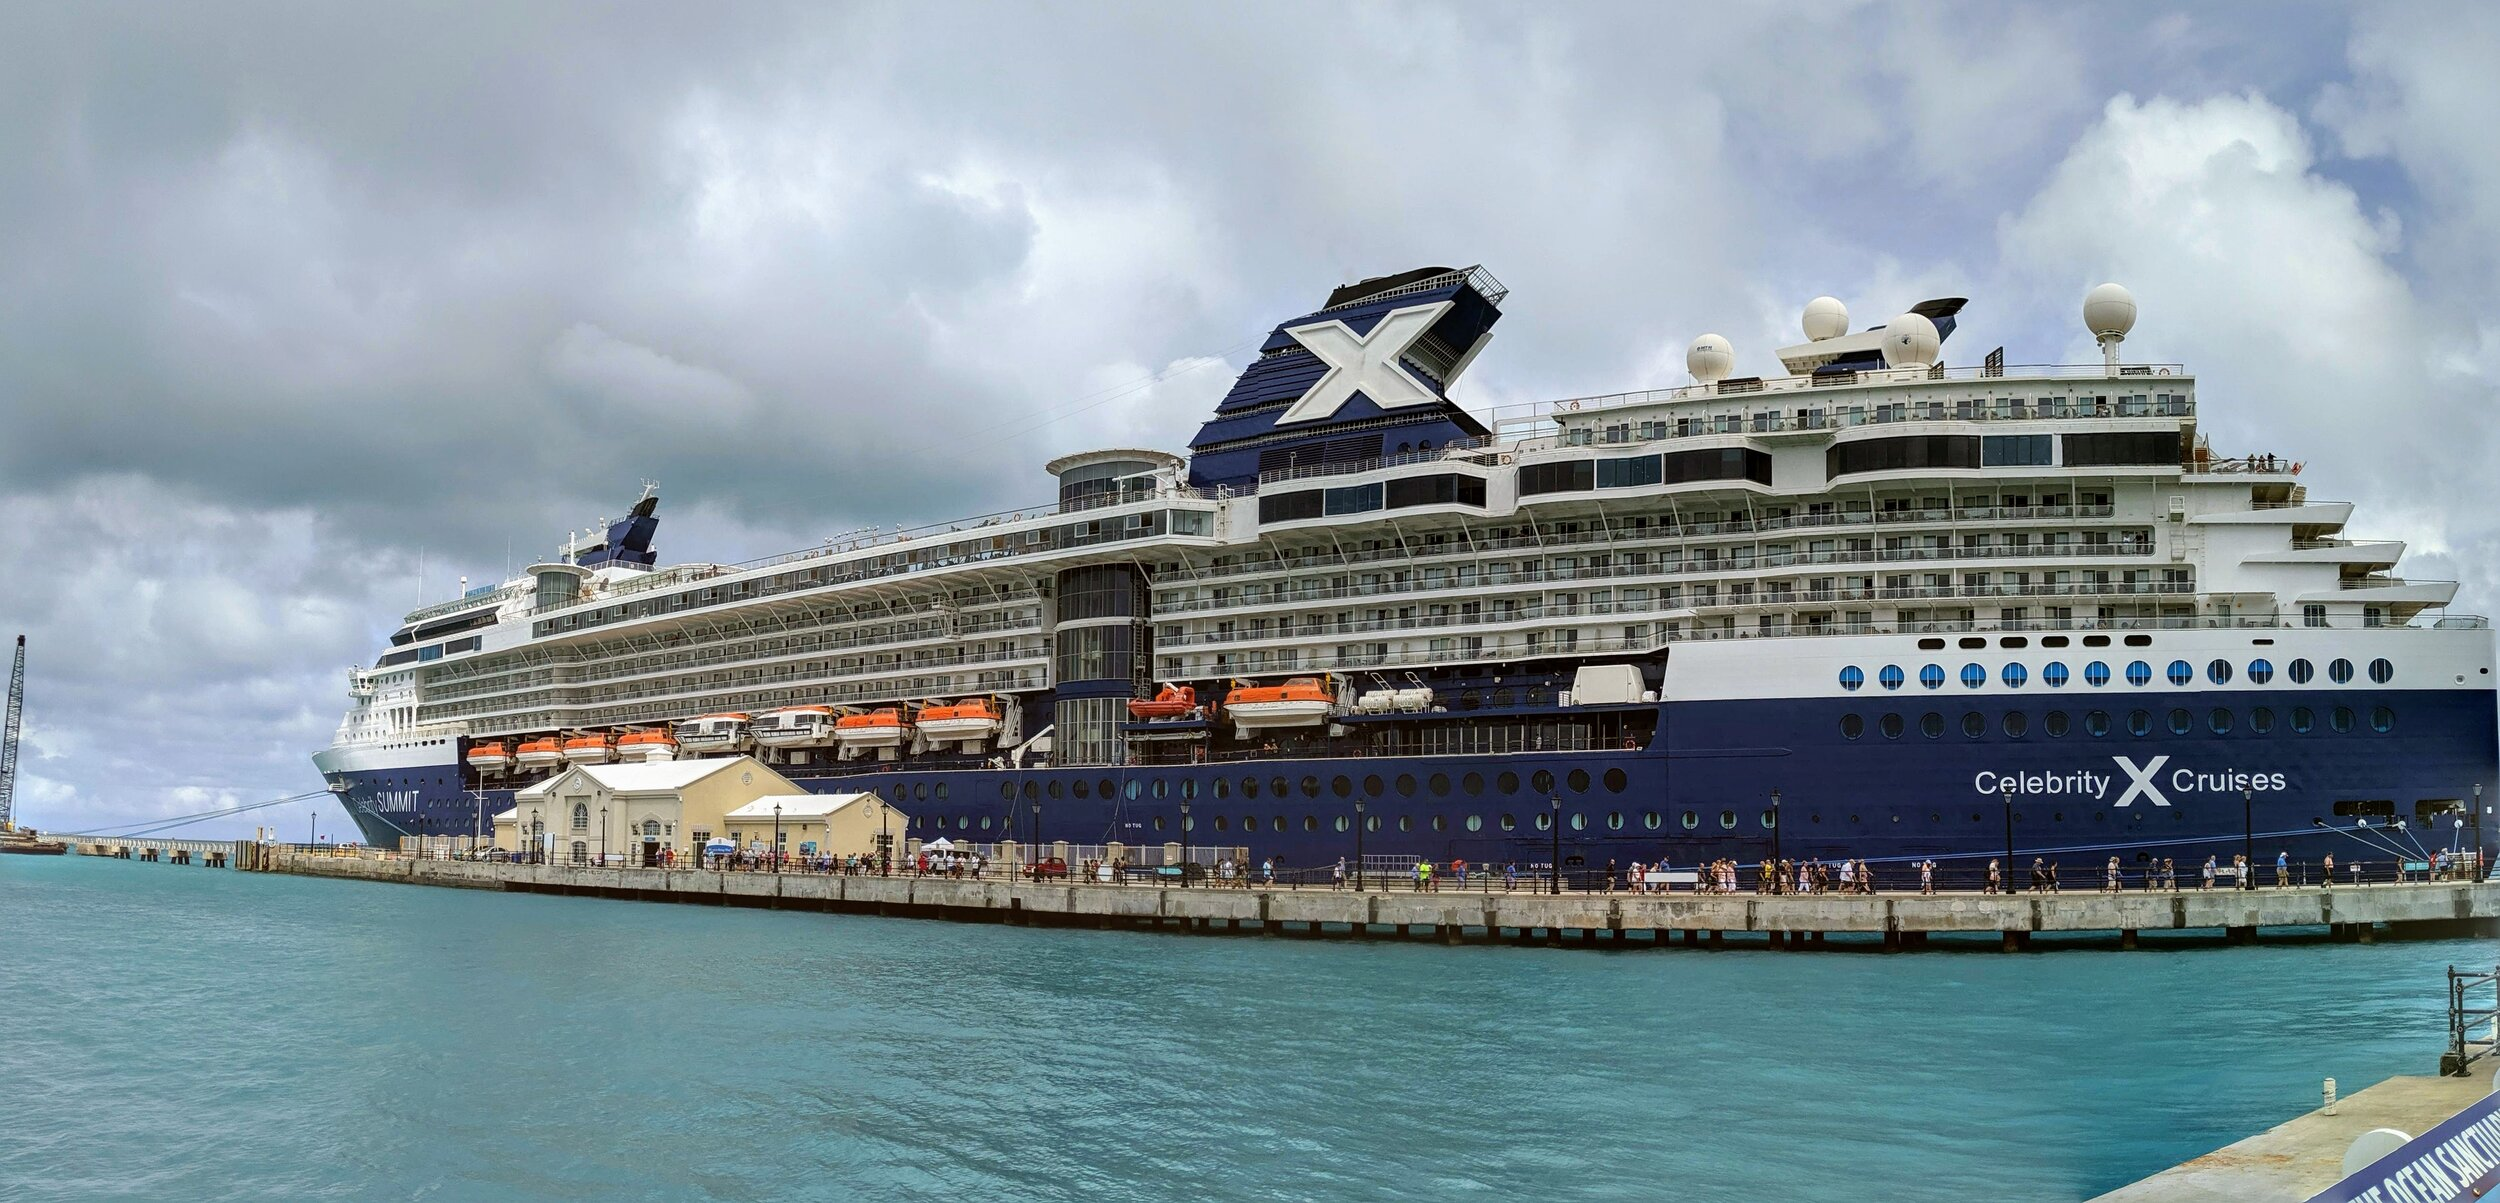 Celebrity Summit docked in King's Wharf, Bermuda.